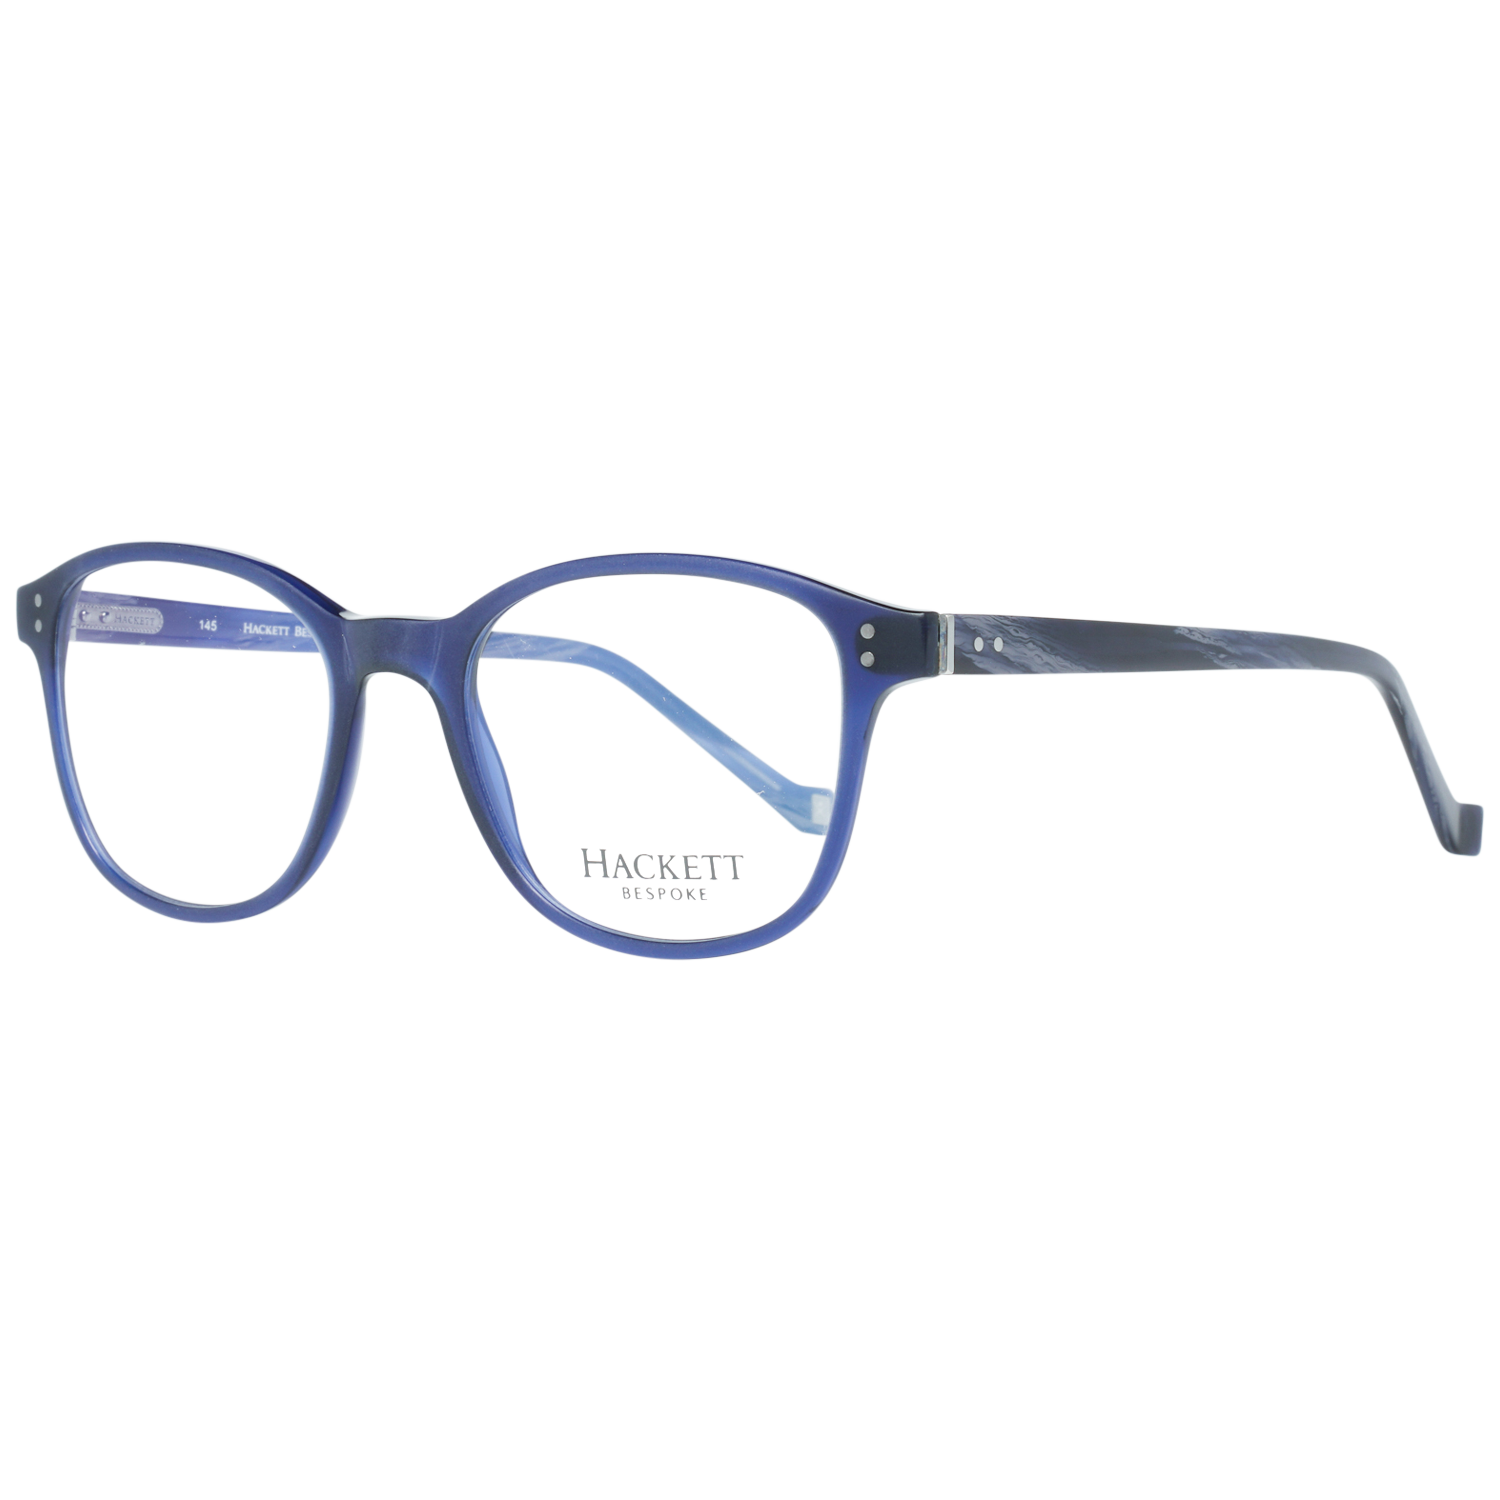 Hackett Bespoke Optical Frame HEB206 683 50 Blue